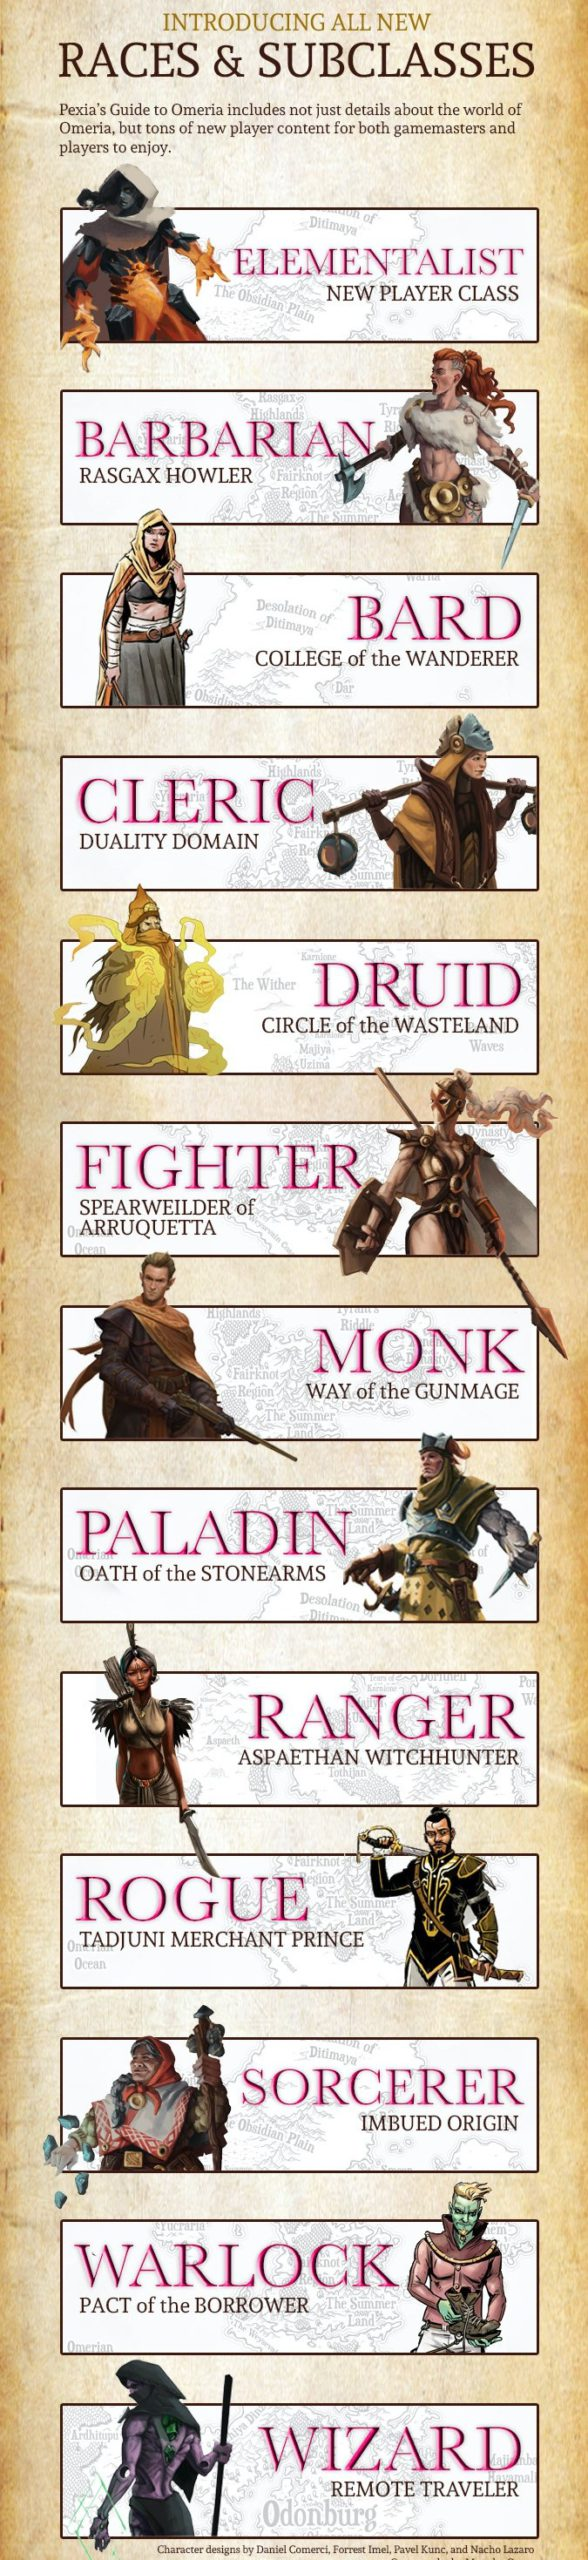 """A tall image with 13 small boxes with an image and text in each. These are """"Elementalist. A new player class"""", """"Barbarian. Rasgax howler"""", """"Bard. College of the Wanderer"""", """"Cleric. Duality domain"""", """"Druid. Circle of the Wasteland"""", """"Fighter. Spearweilder of Arruquetta"""", """"Monk. Way of the gun mage"""", """"Paladin. Oath of the Stone Arms"""", """"Ranger. Aspaethan of Witchhunter"""", """"Rogue. Tadjuni merchant prince"""", """"Sorceror. Imbued origin"""", """"Warlock. Pact of the Borrower"""" and """"Wizard. Remote traveller""""."""